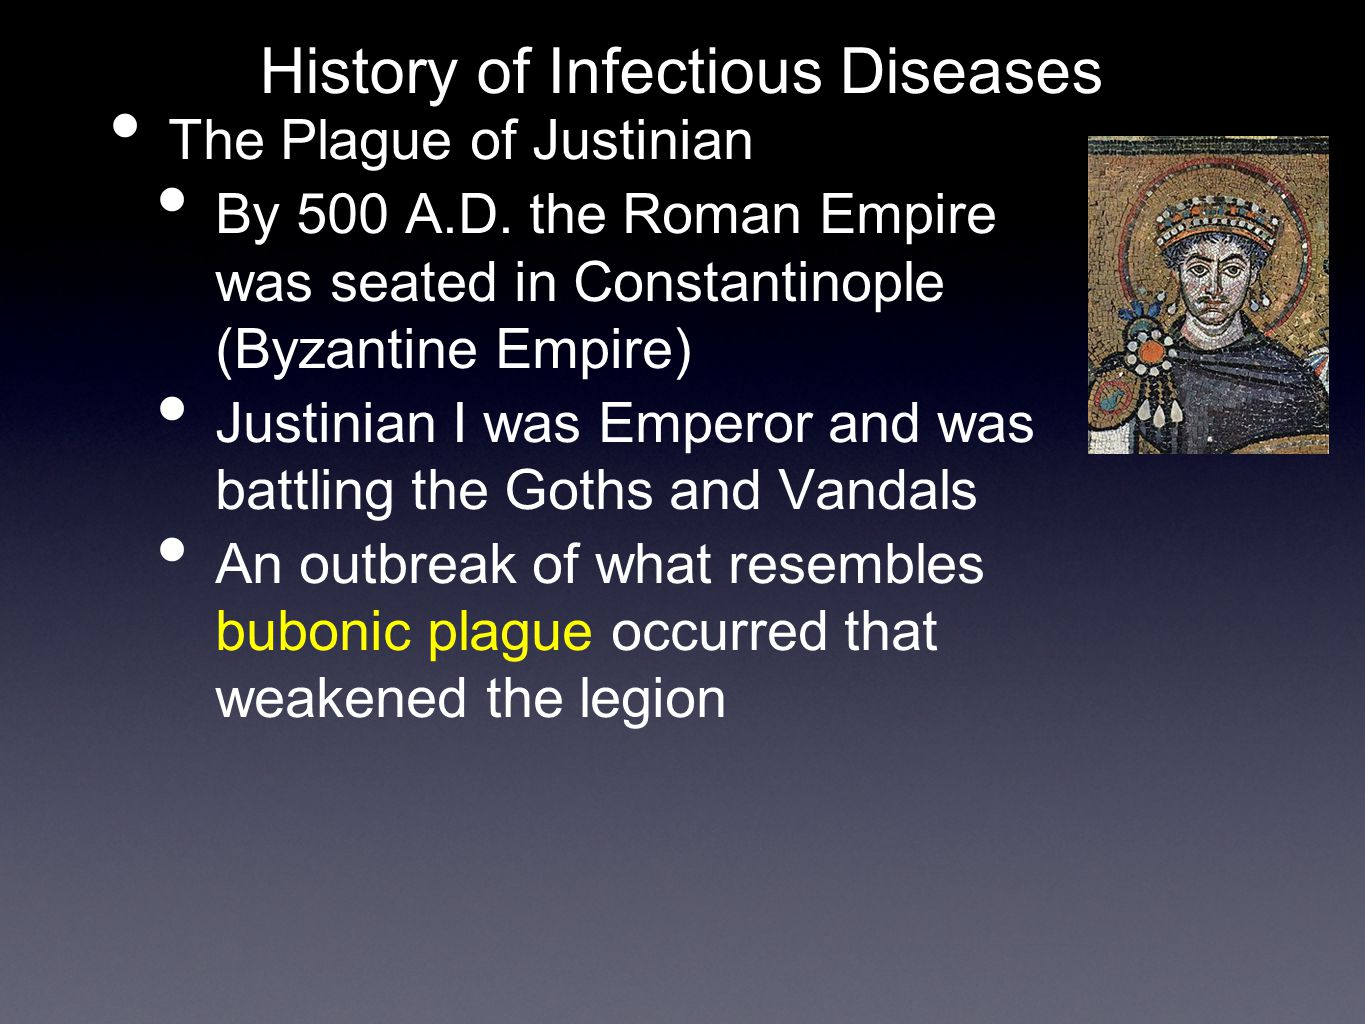 The Plague of Justinian By 500 A.D.